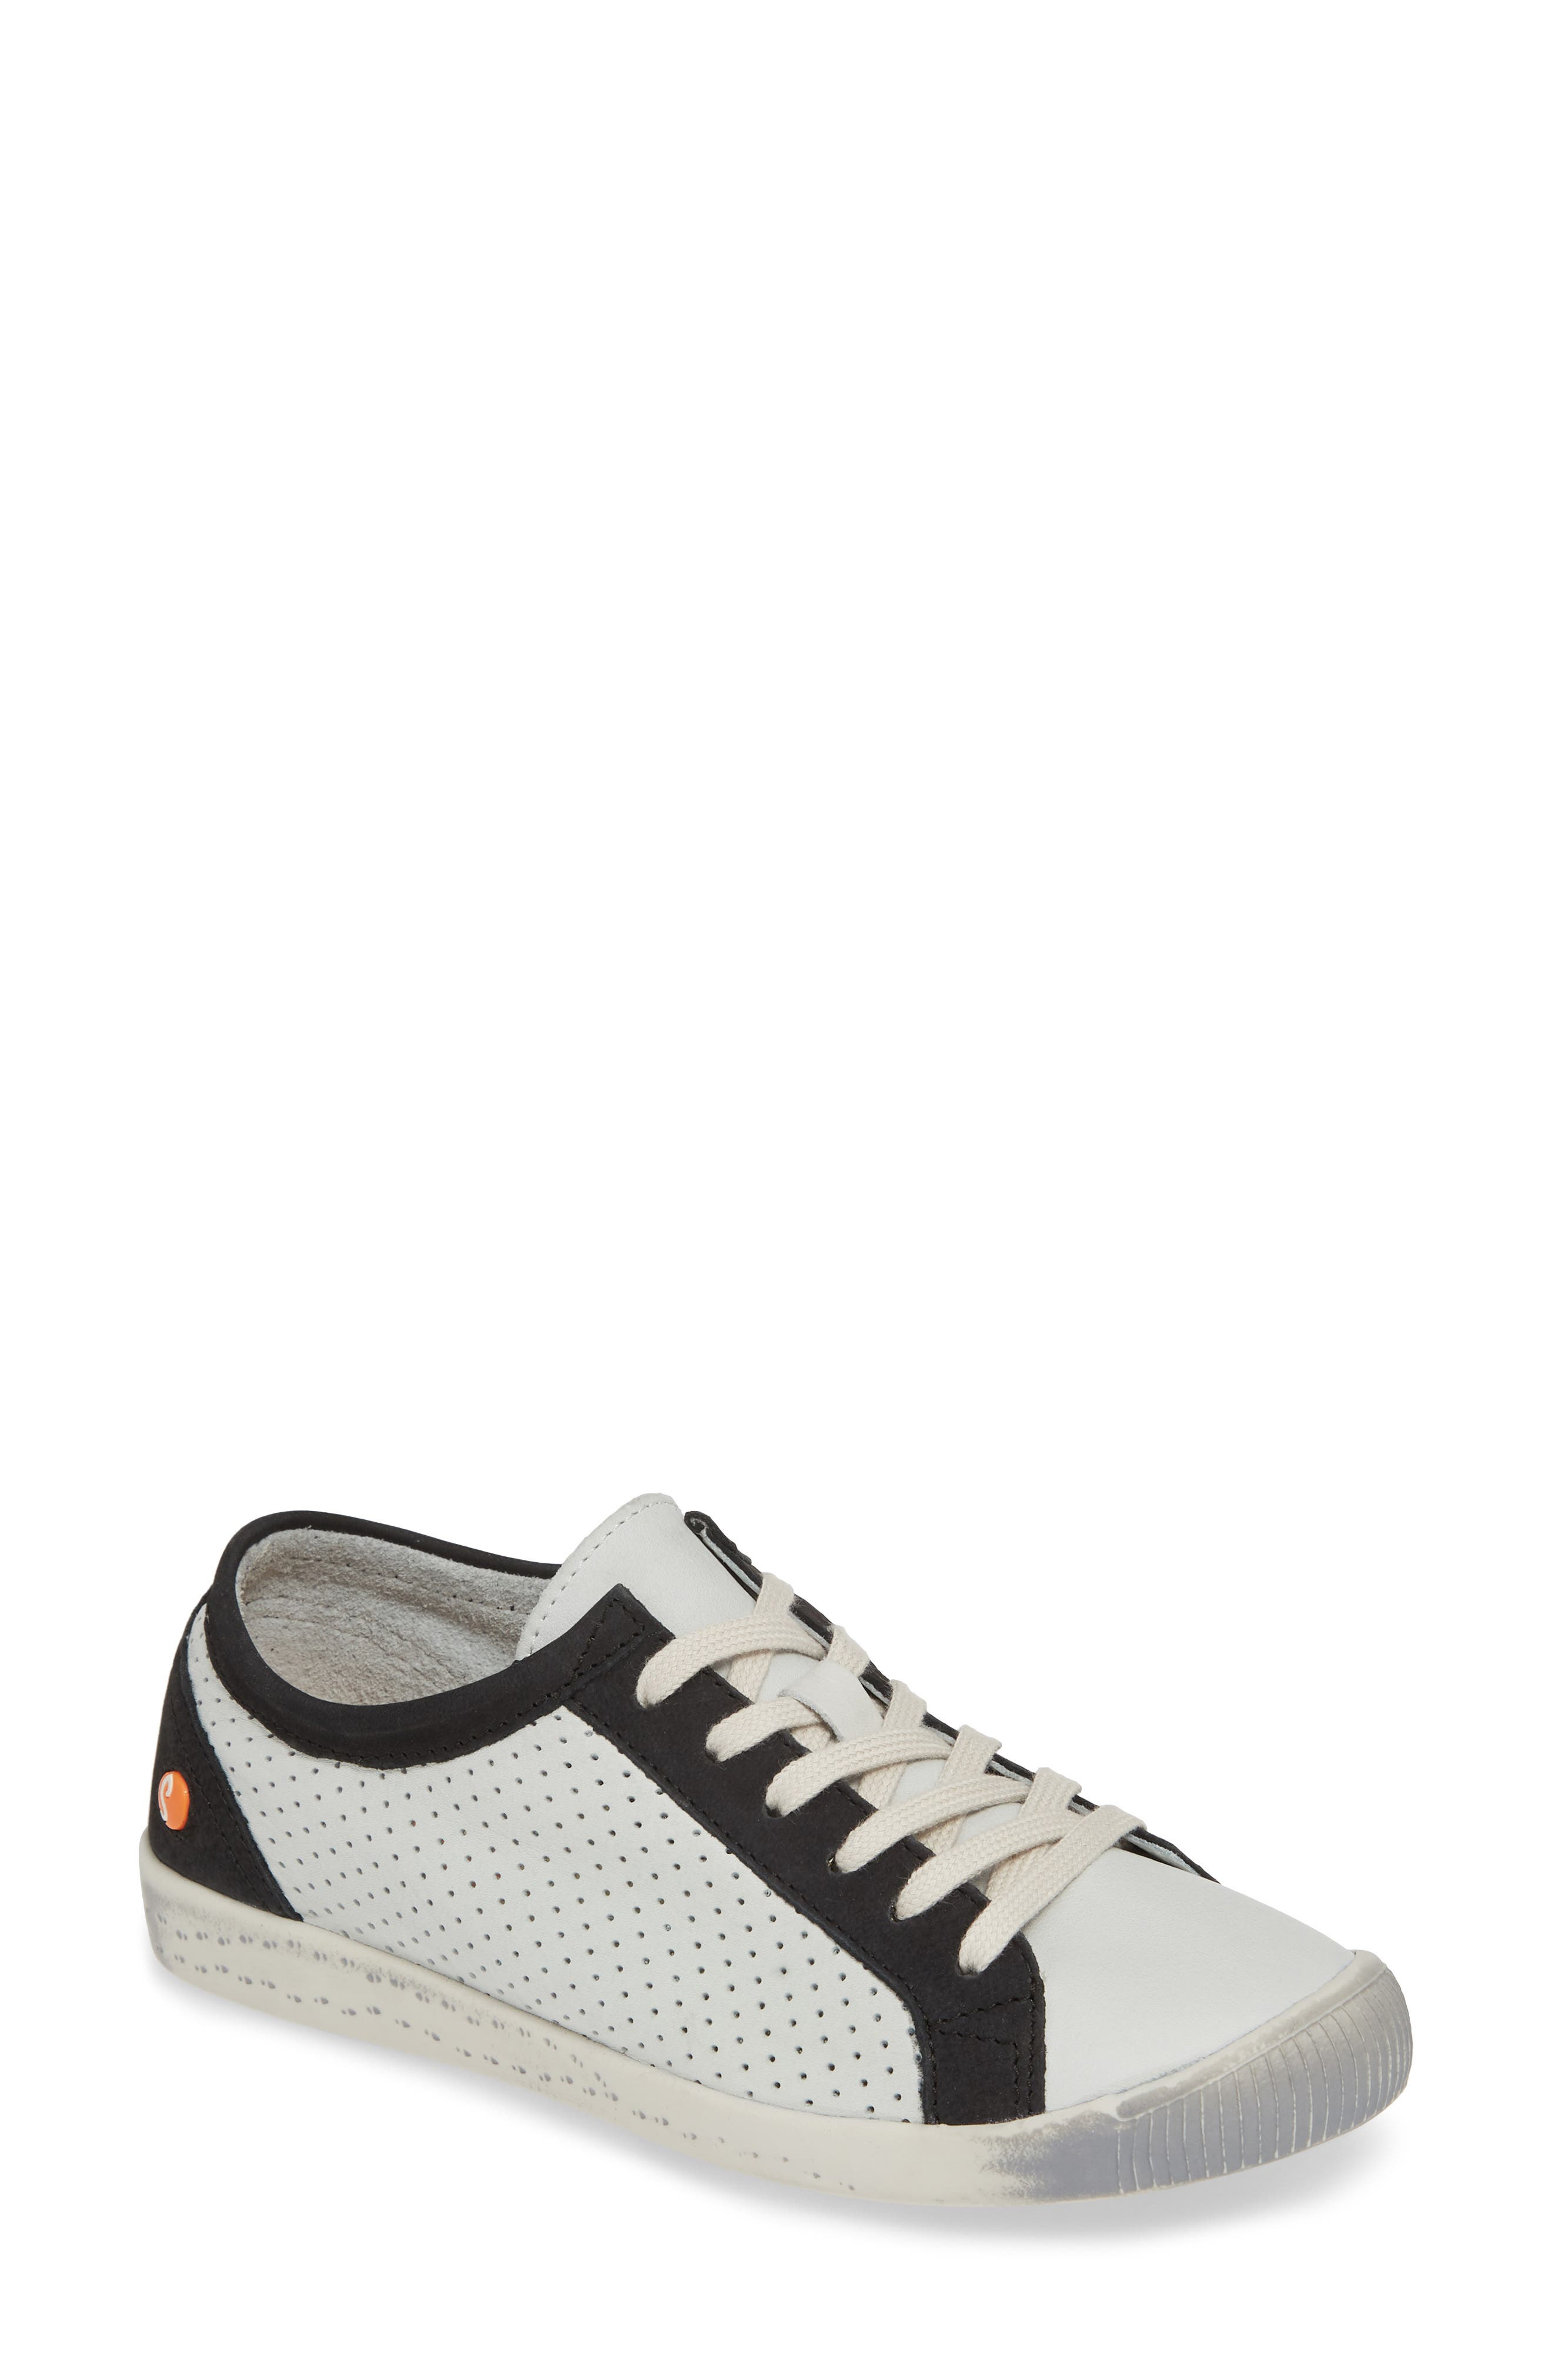 Softinos By Fly London Ica Sneaker - White